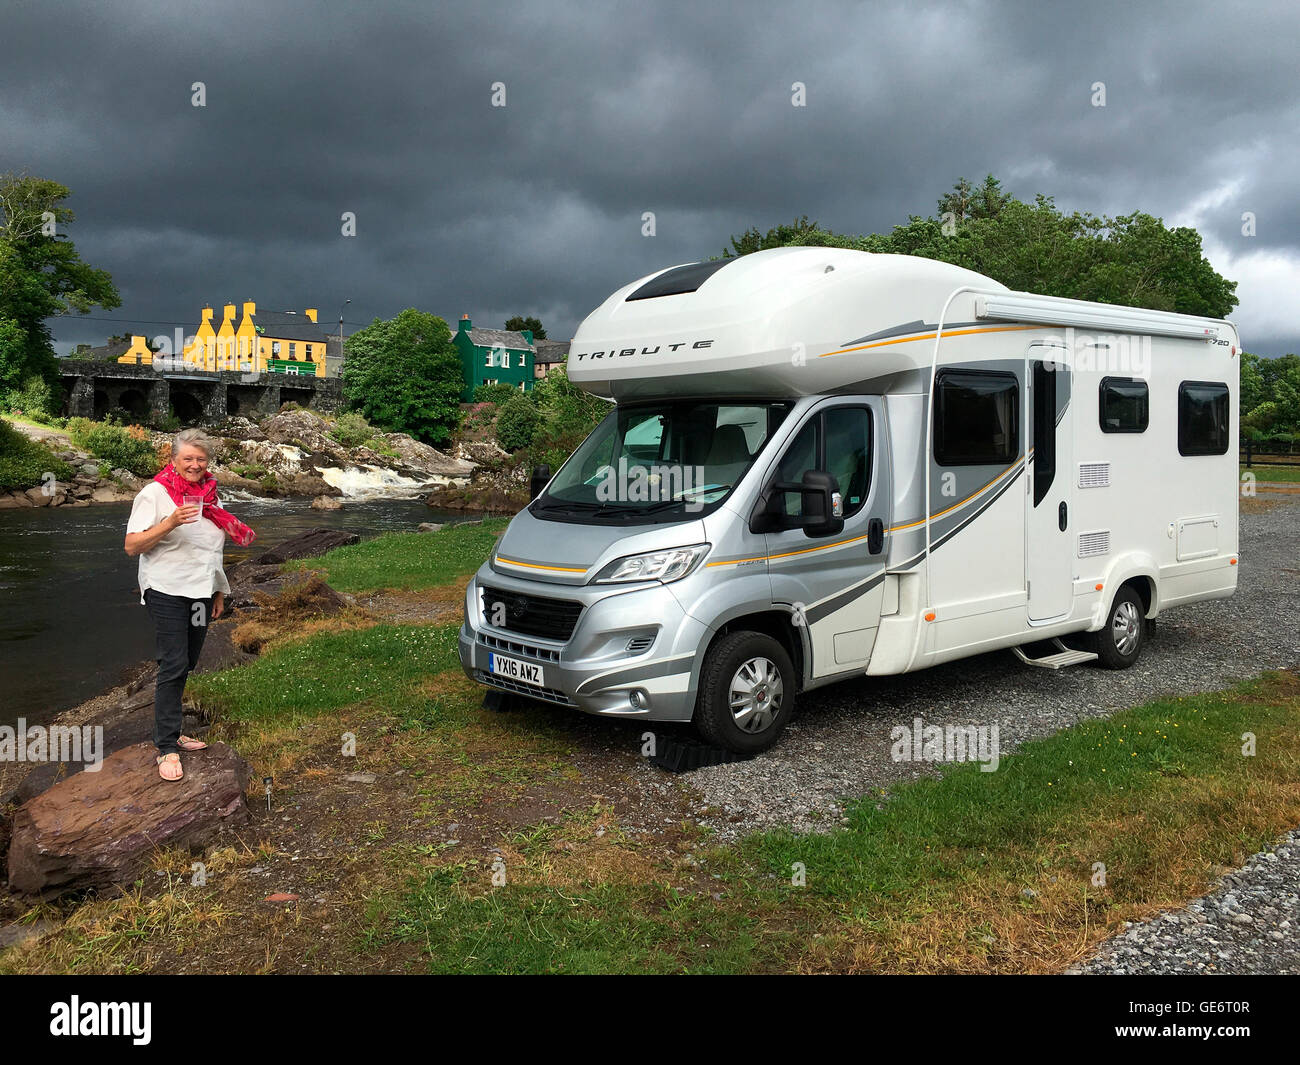 Motorhome Wild Camping near a river in the village of Sneem in the Republic of Ireland - Stock Image